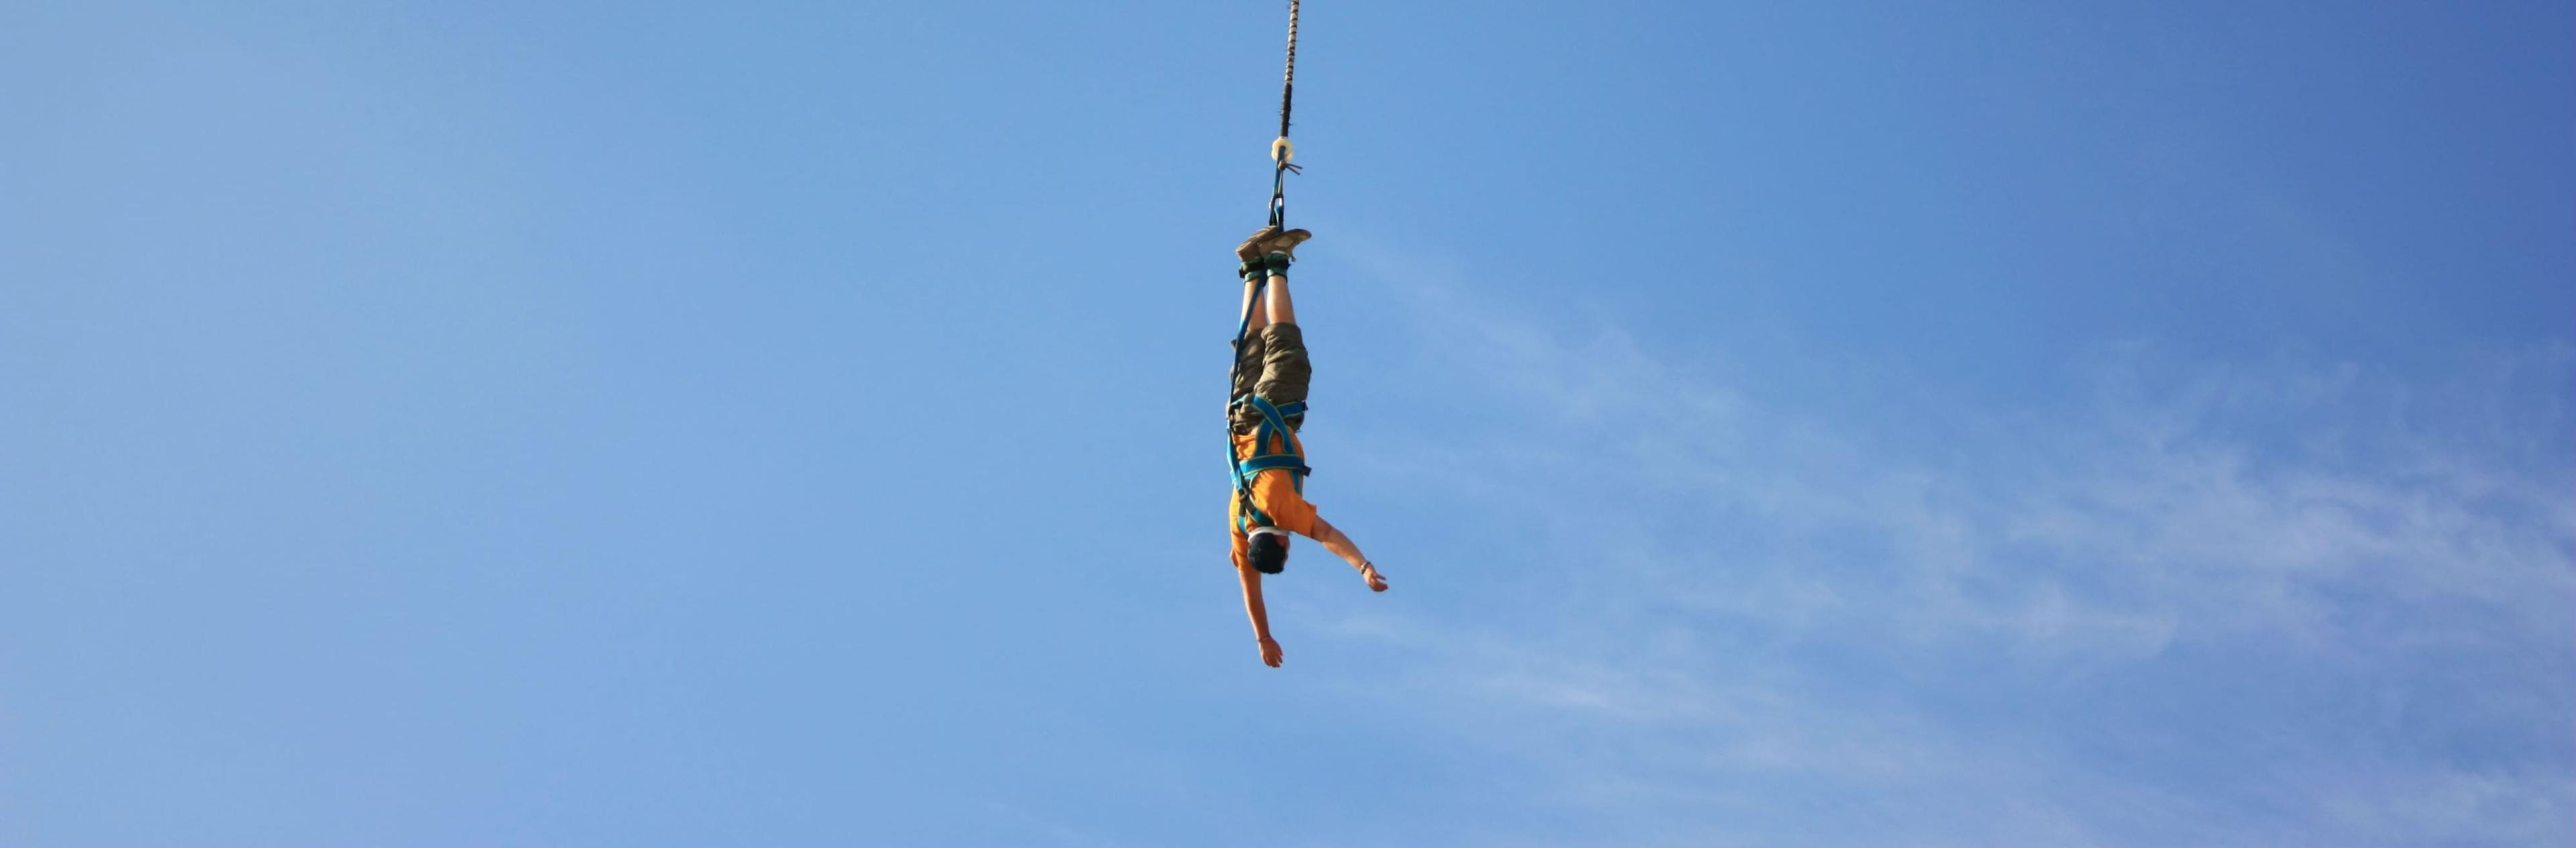 Bungee Jumping.Bungee Jumping From Viaduc Banne 40m By Elastic Crocodil Bungee